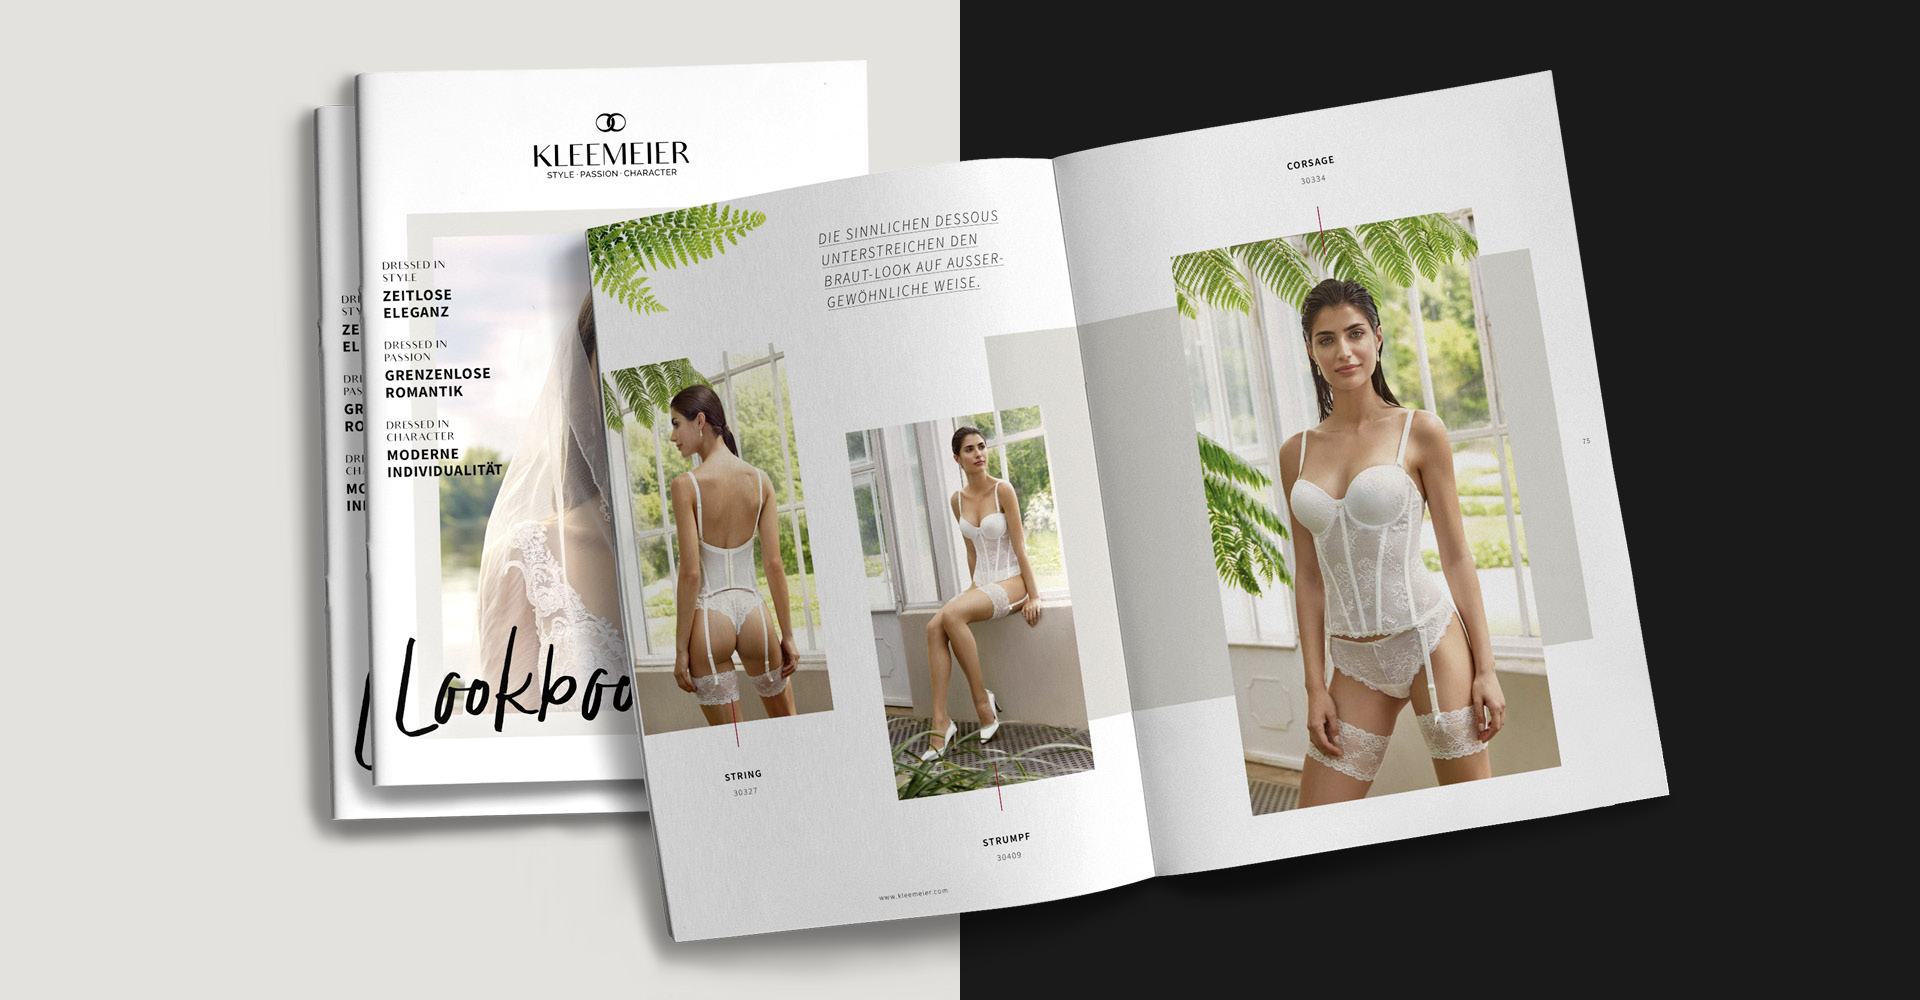 OPUS Marketing / Projekt / KLEEMEIER / Lookbook / Dessous